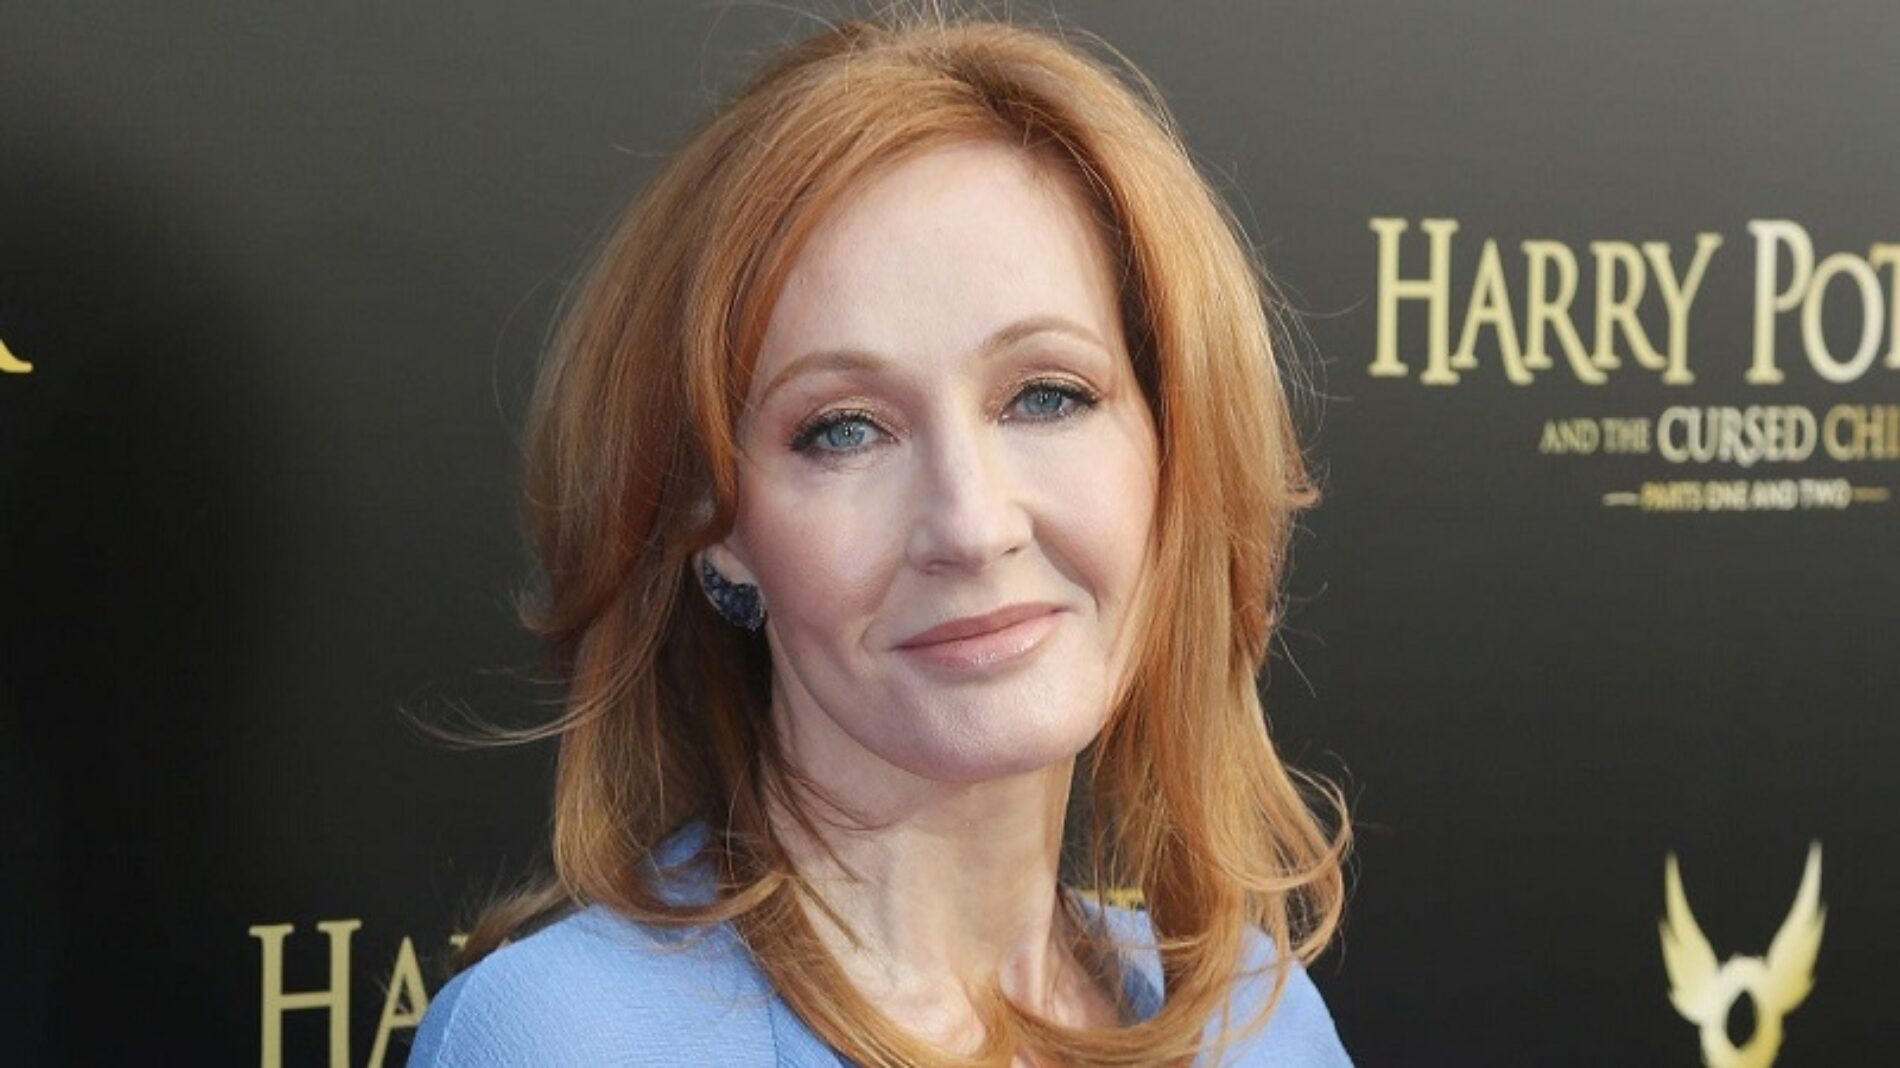 Literati come out in support of JK Rowling amid onslaught of social media abuse and deaths threats over 'transphobia' row